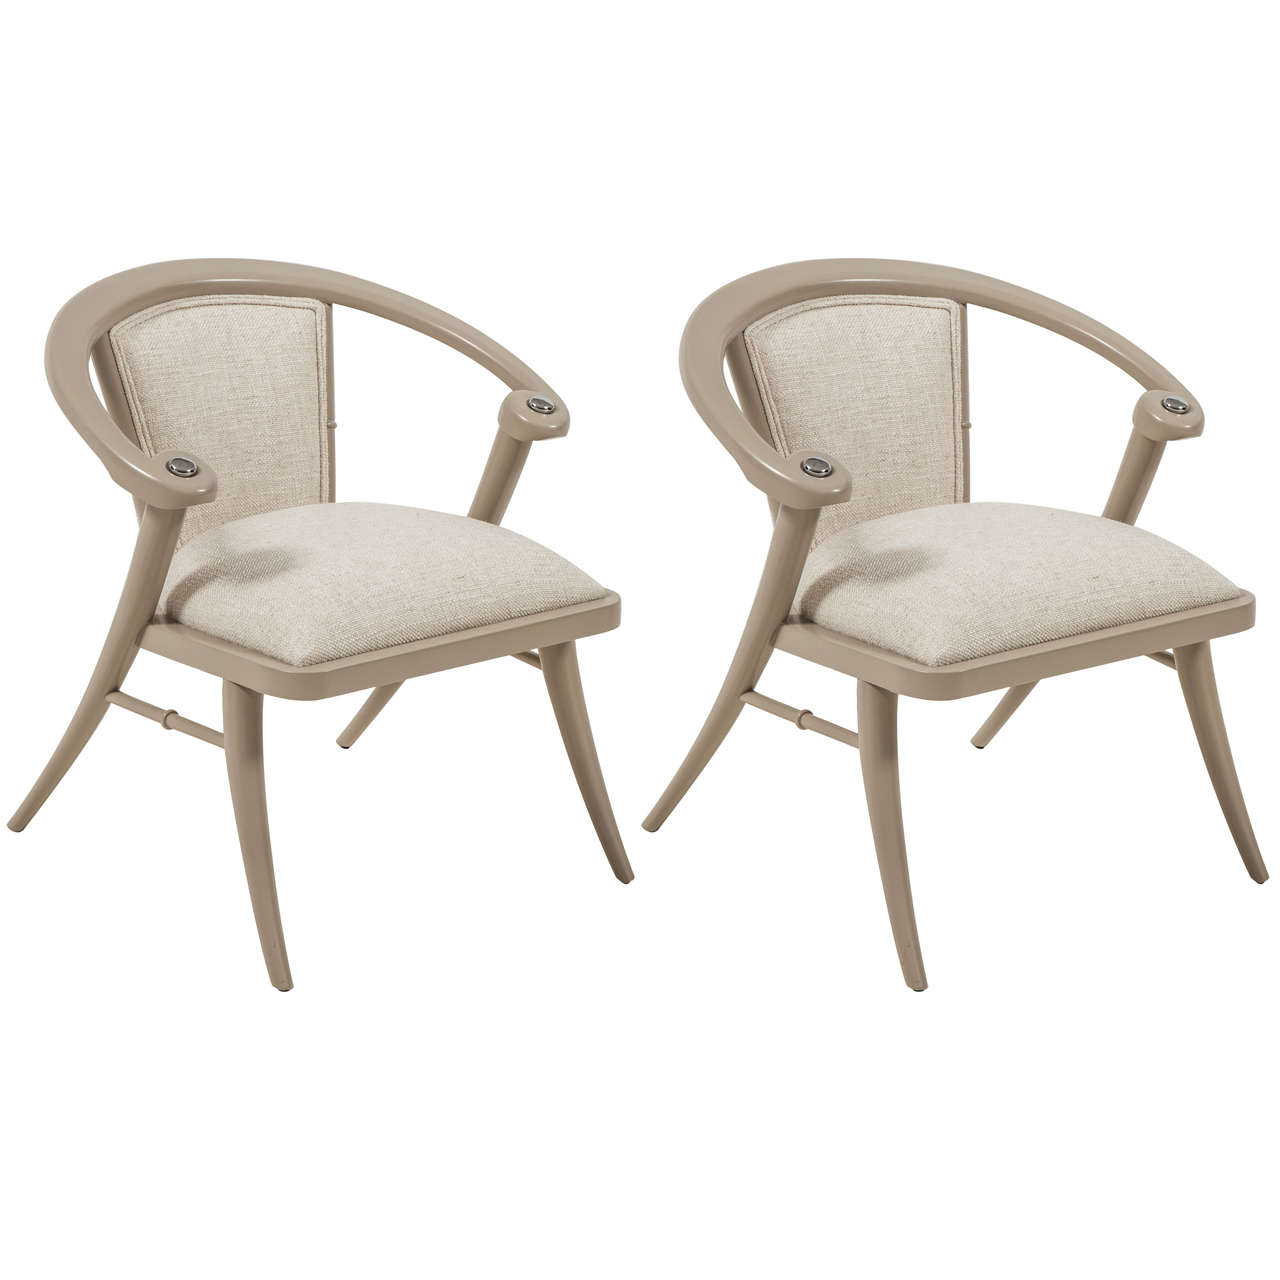 Pair of Lacquered Chairs 1